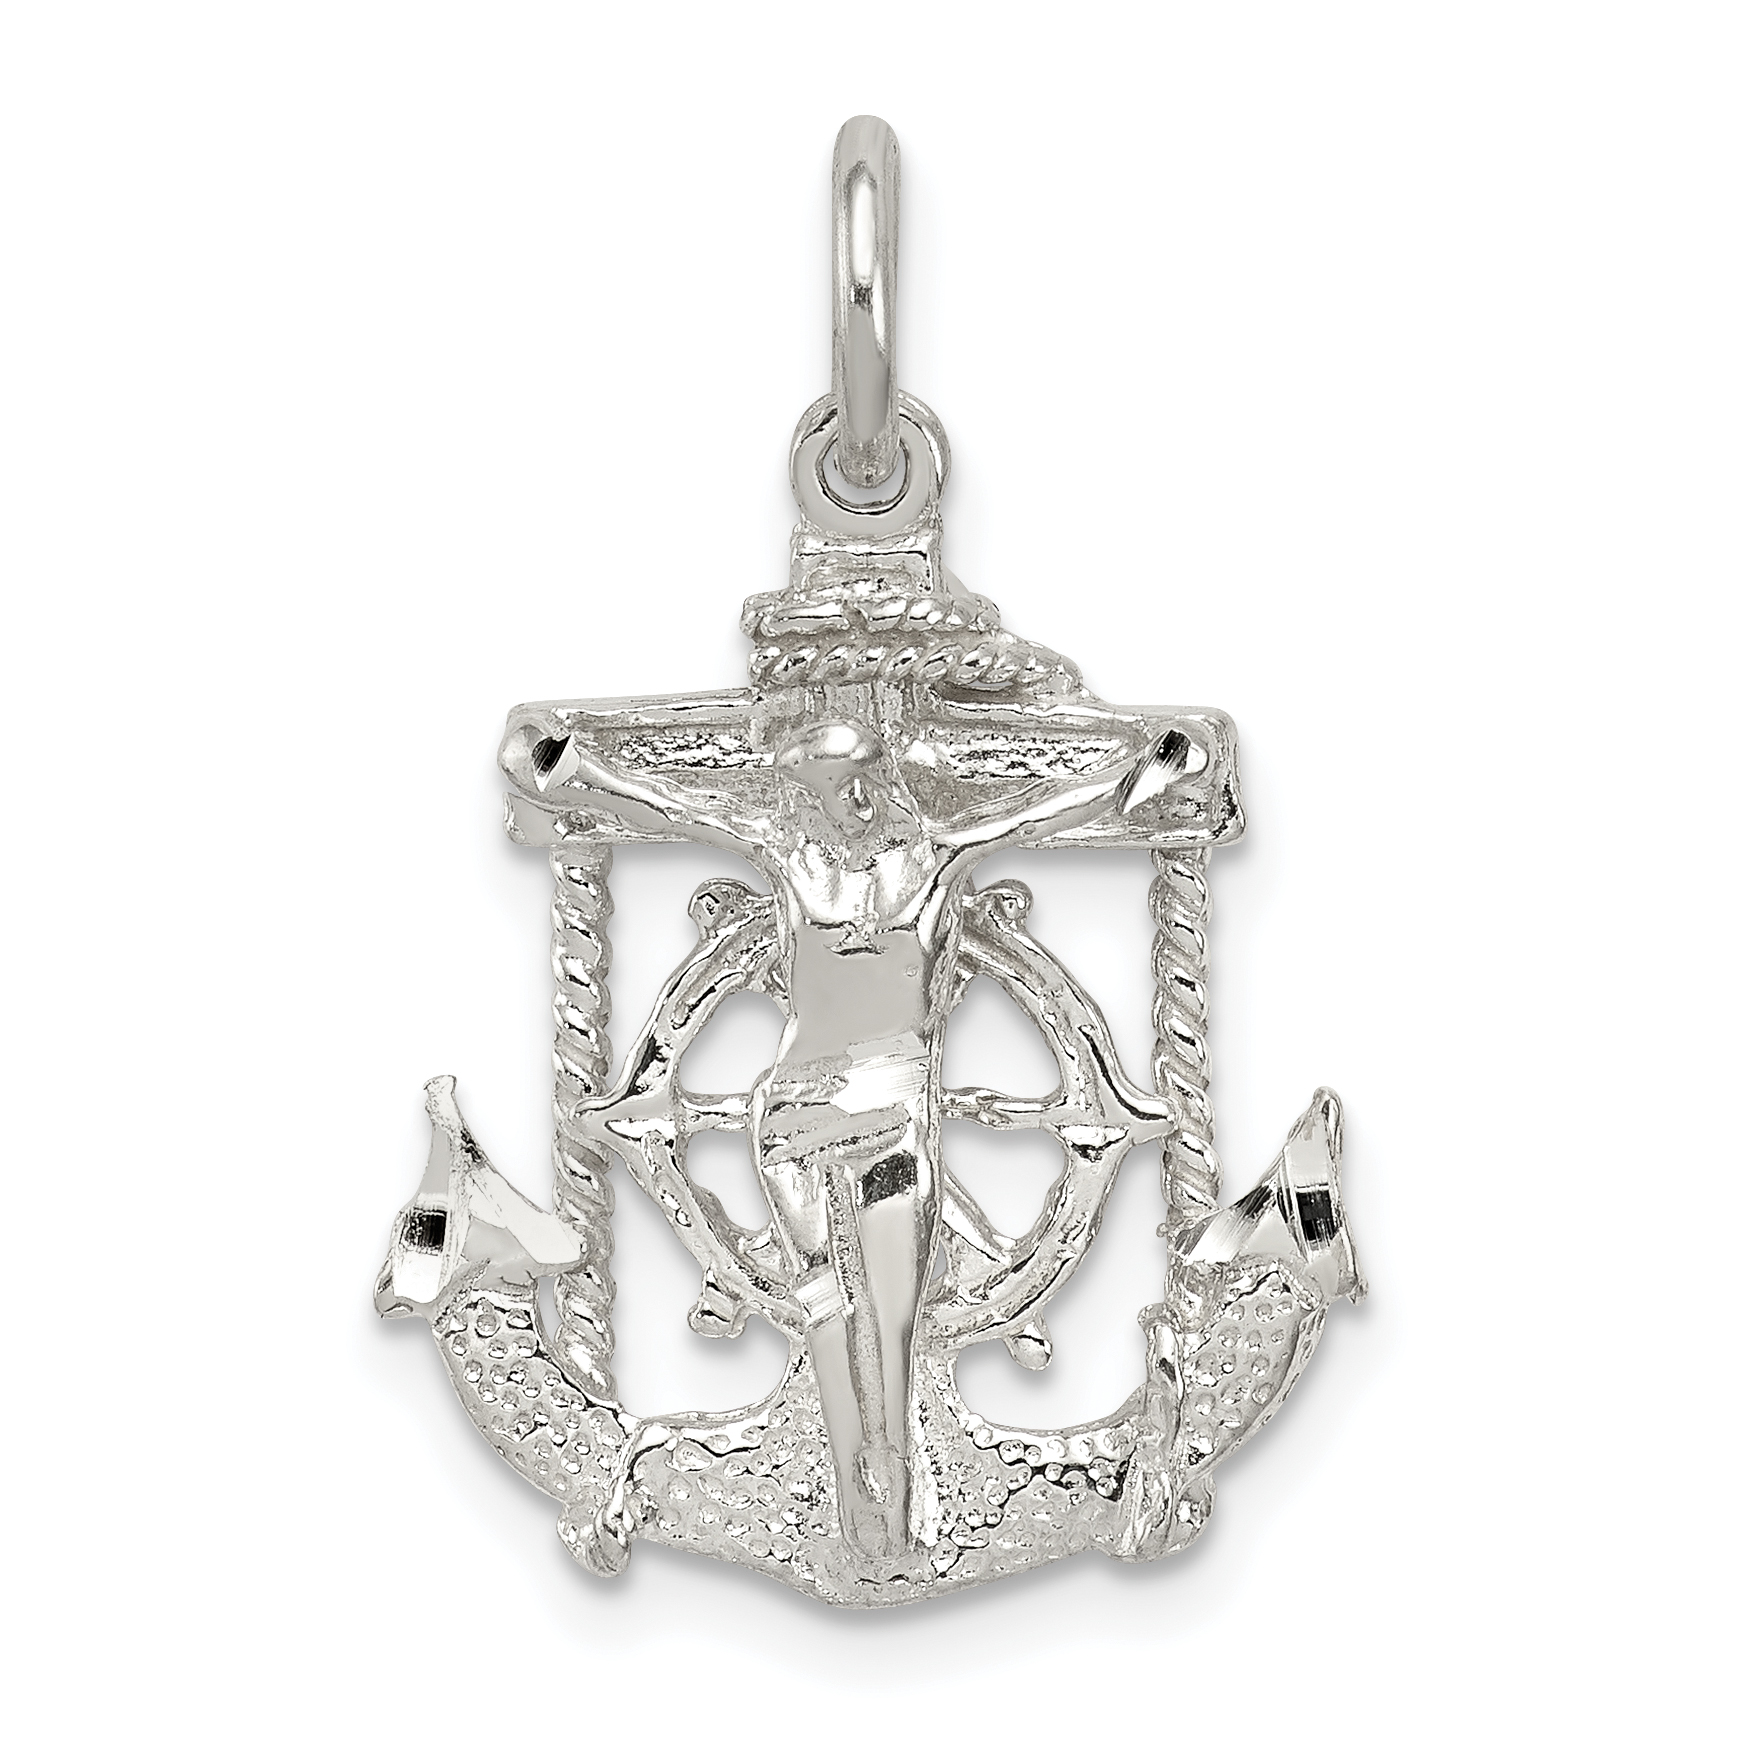 Fashion Necklaces & Pendants 925 Sterling Silver Cross Religious Pendant Charm Necklace Mariner Fine Jewelry Fashion Jewelry